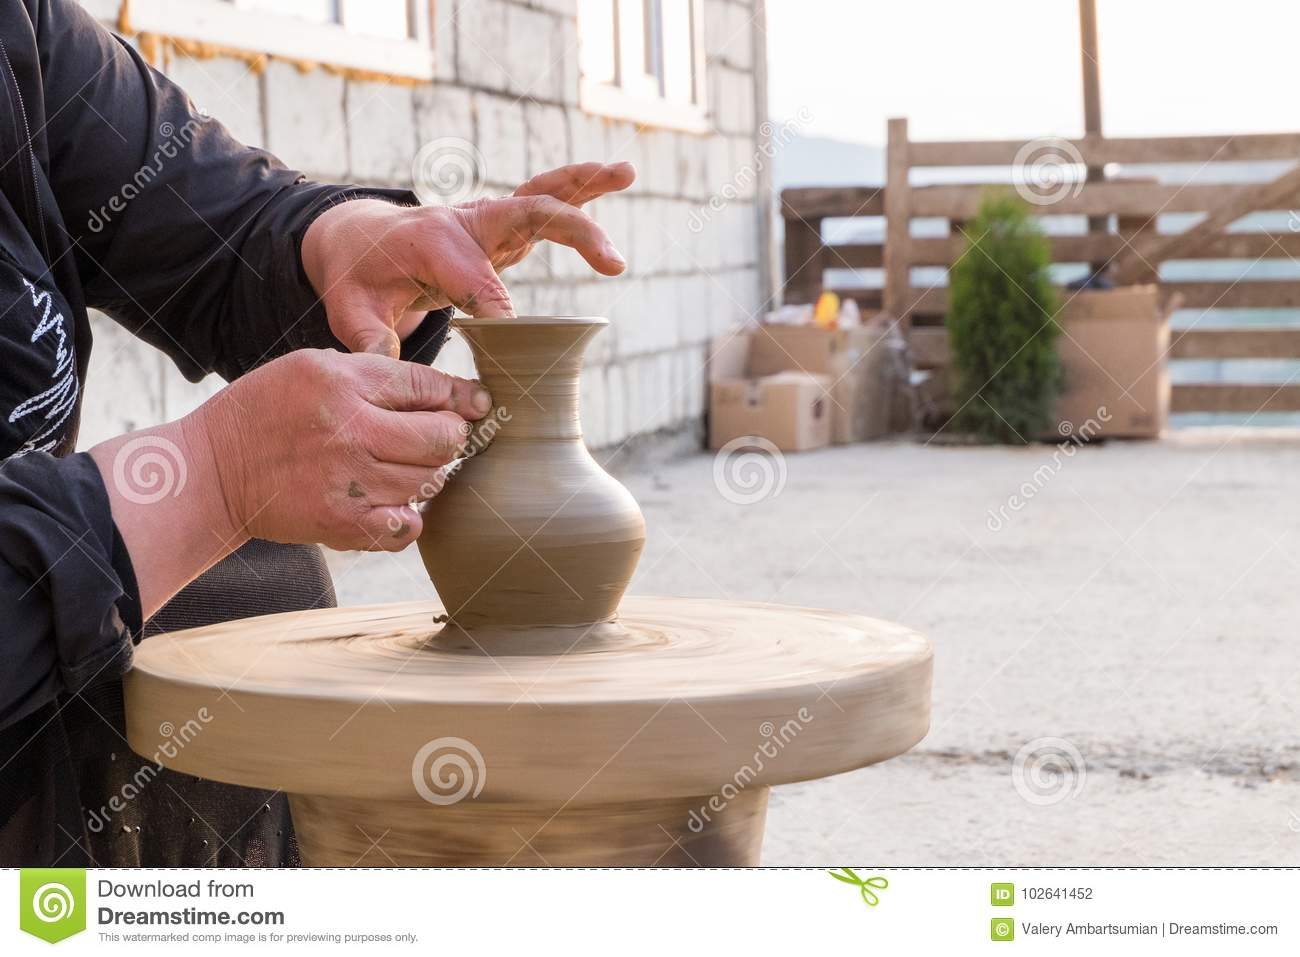 Hands of a potter woman make a pitcher of clay in the courtyard of the house